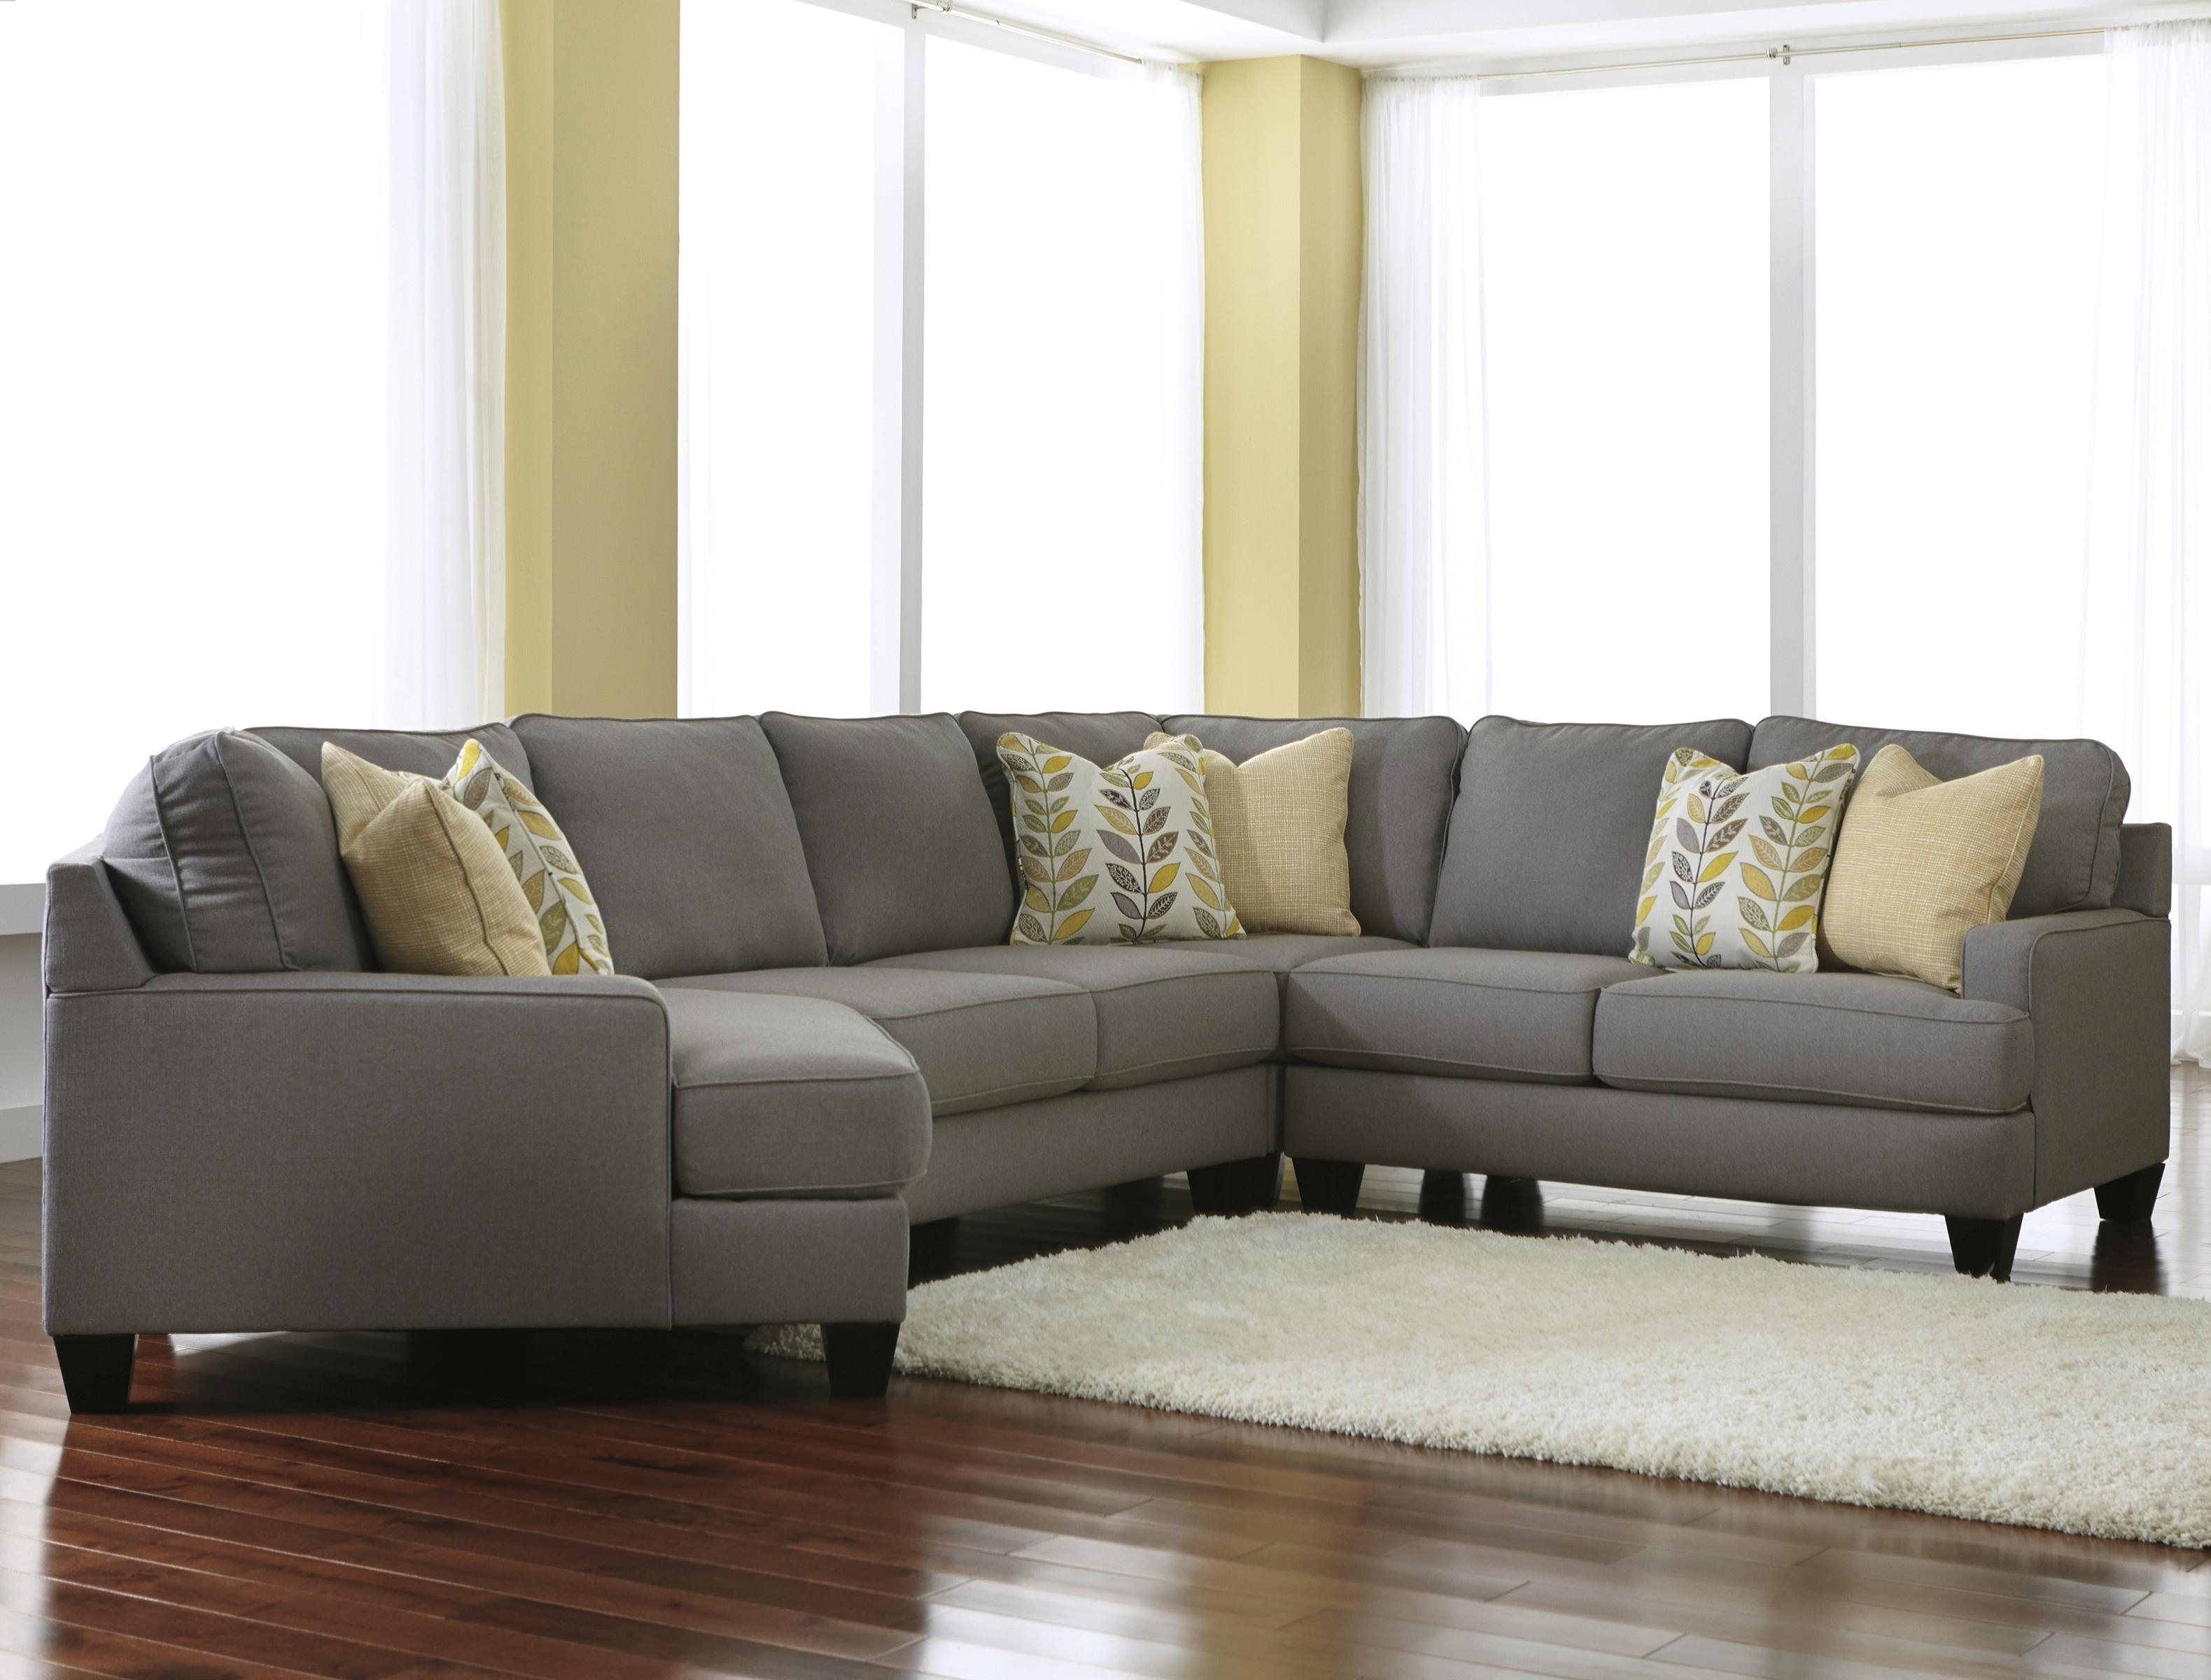 Signature Designashley Chamberly – Alloy Modern 4 Piece With Regard To East Bay Sectional Sofas (View 8 of 10)